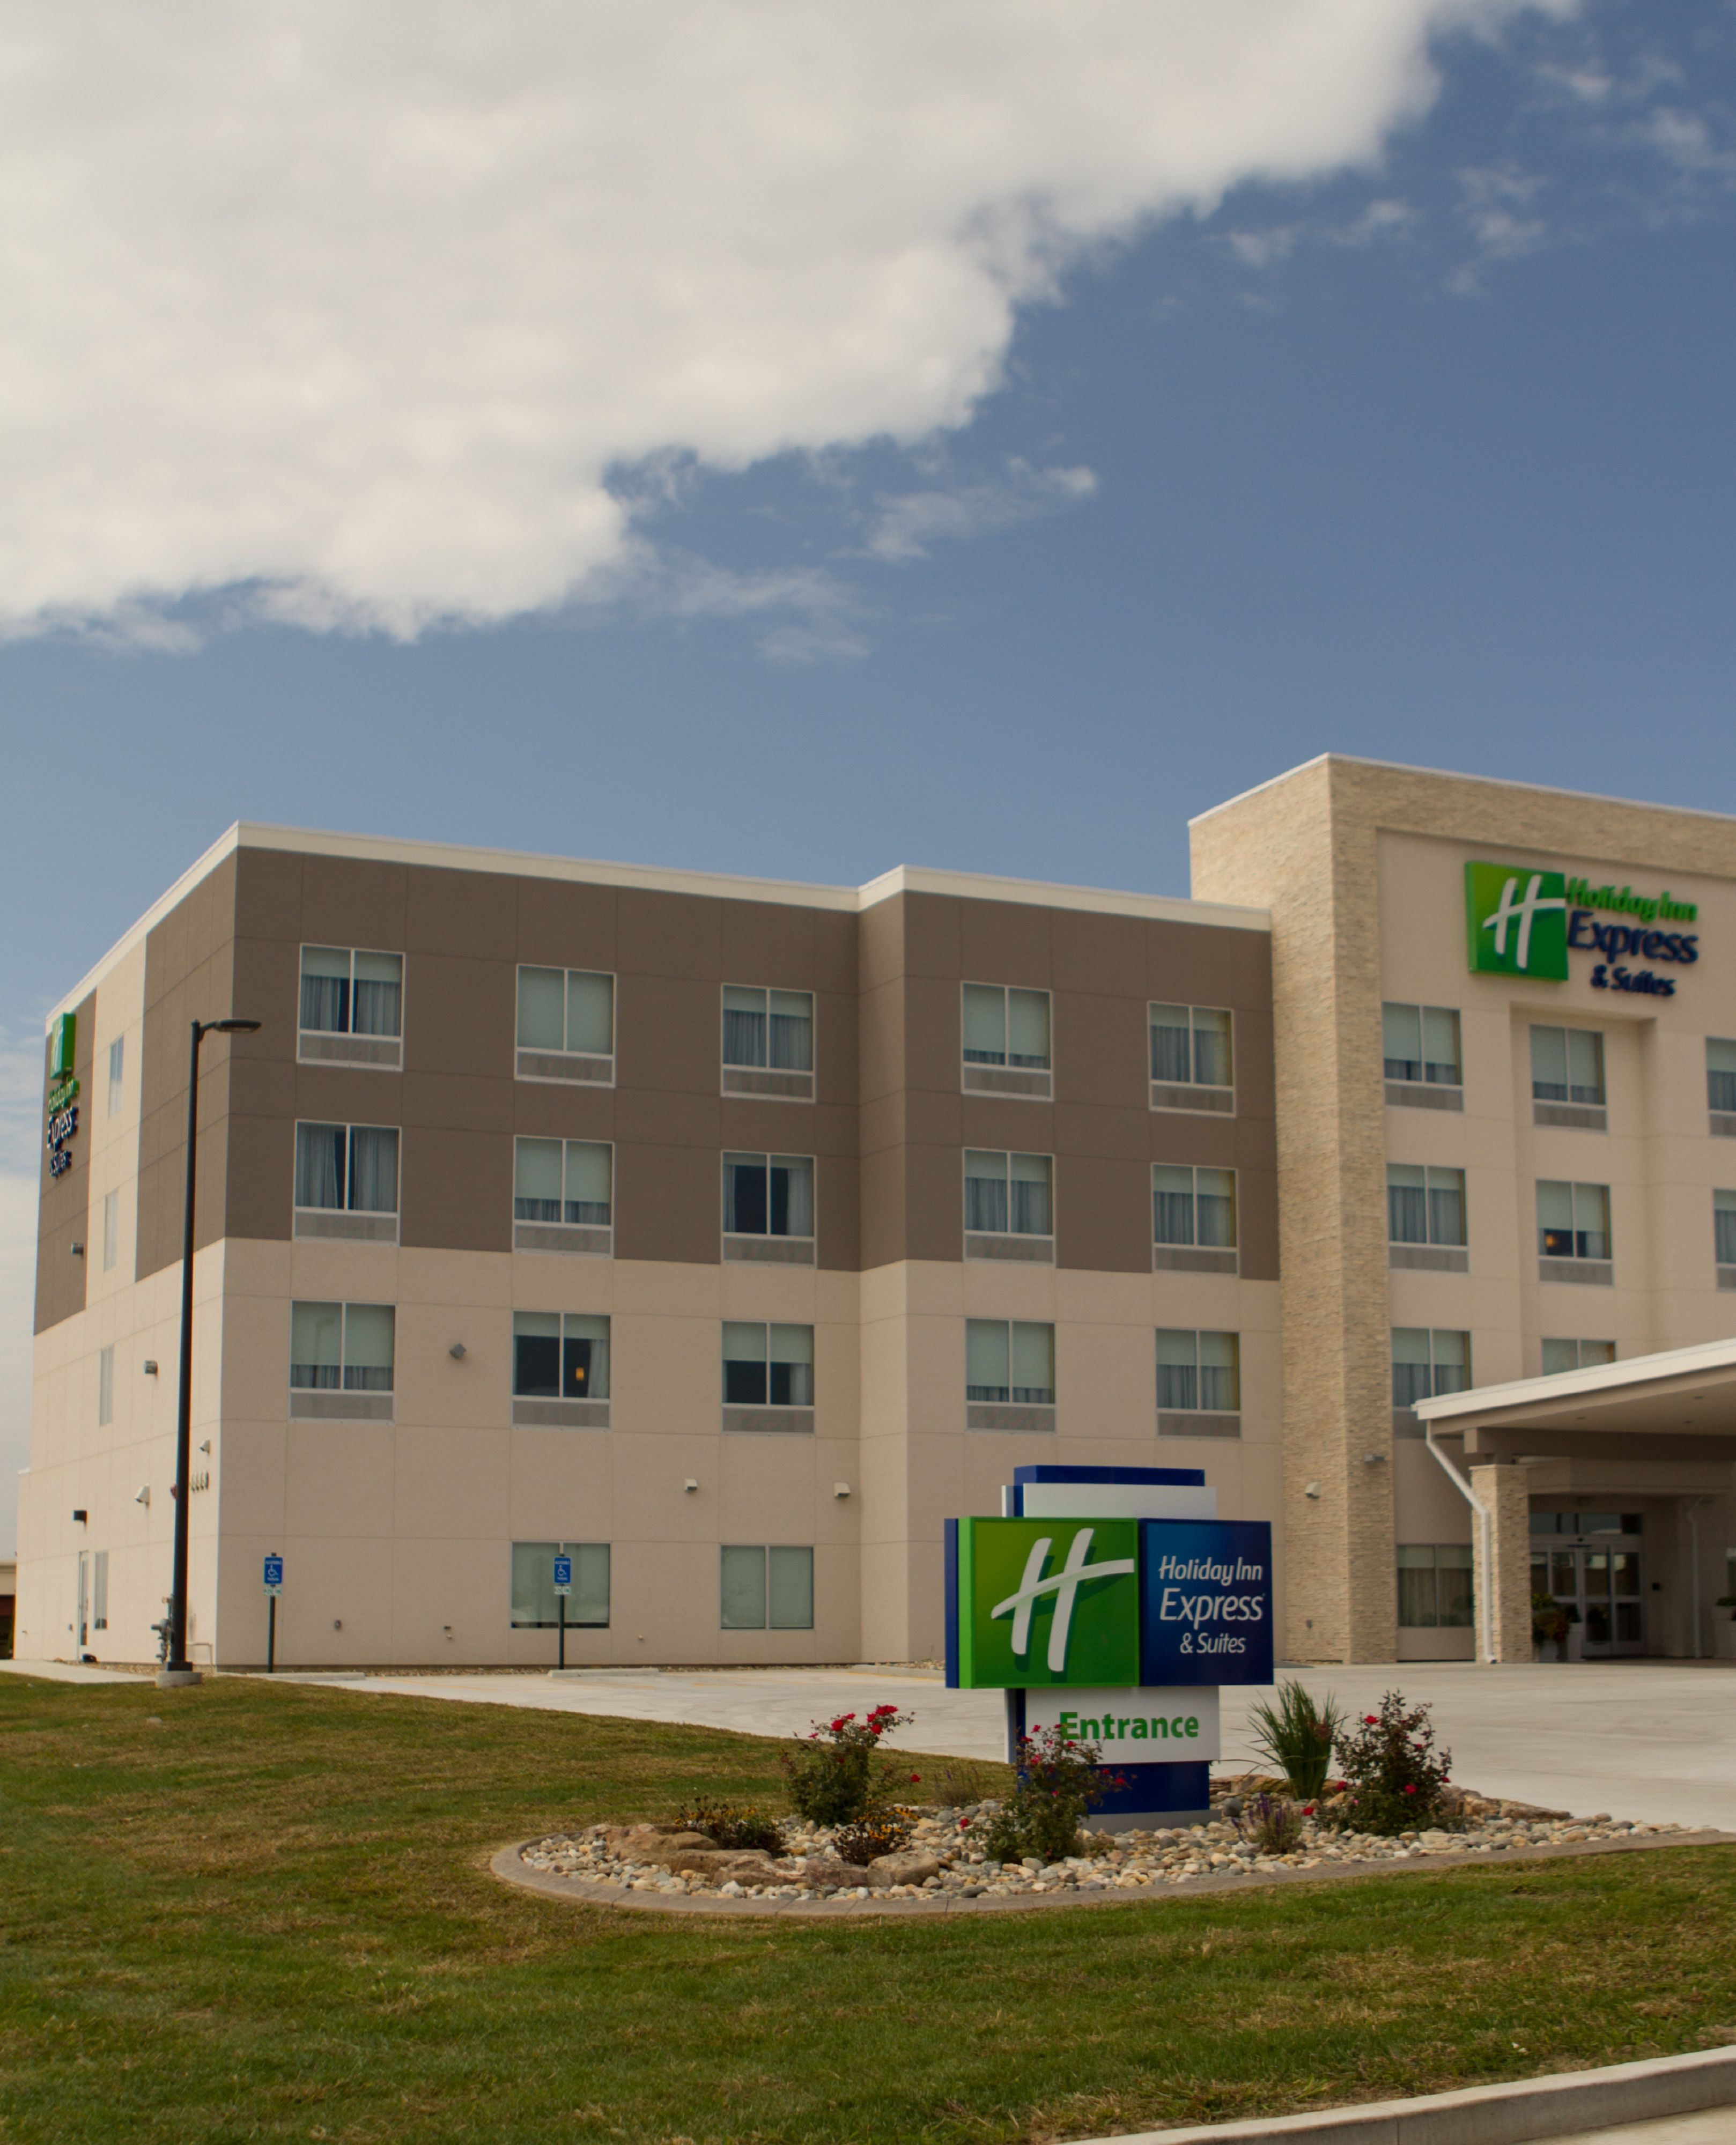 Suites In Lincoln Ne: Holiday Inn Express & Suites Lincoln South In Lincoln, NE